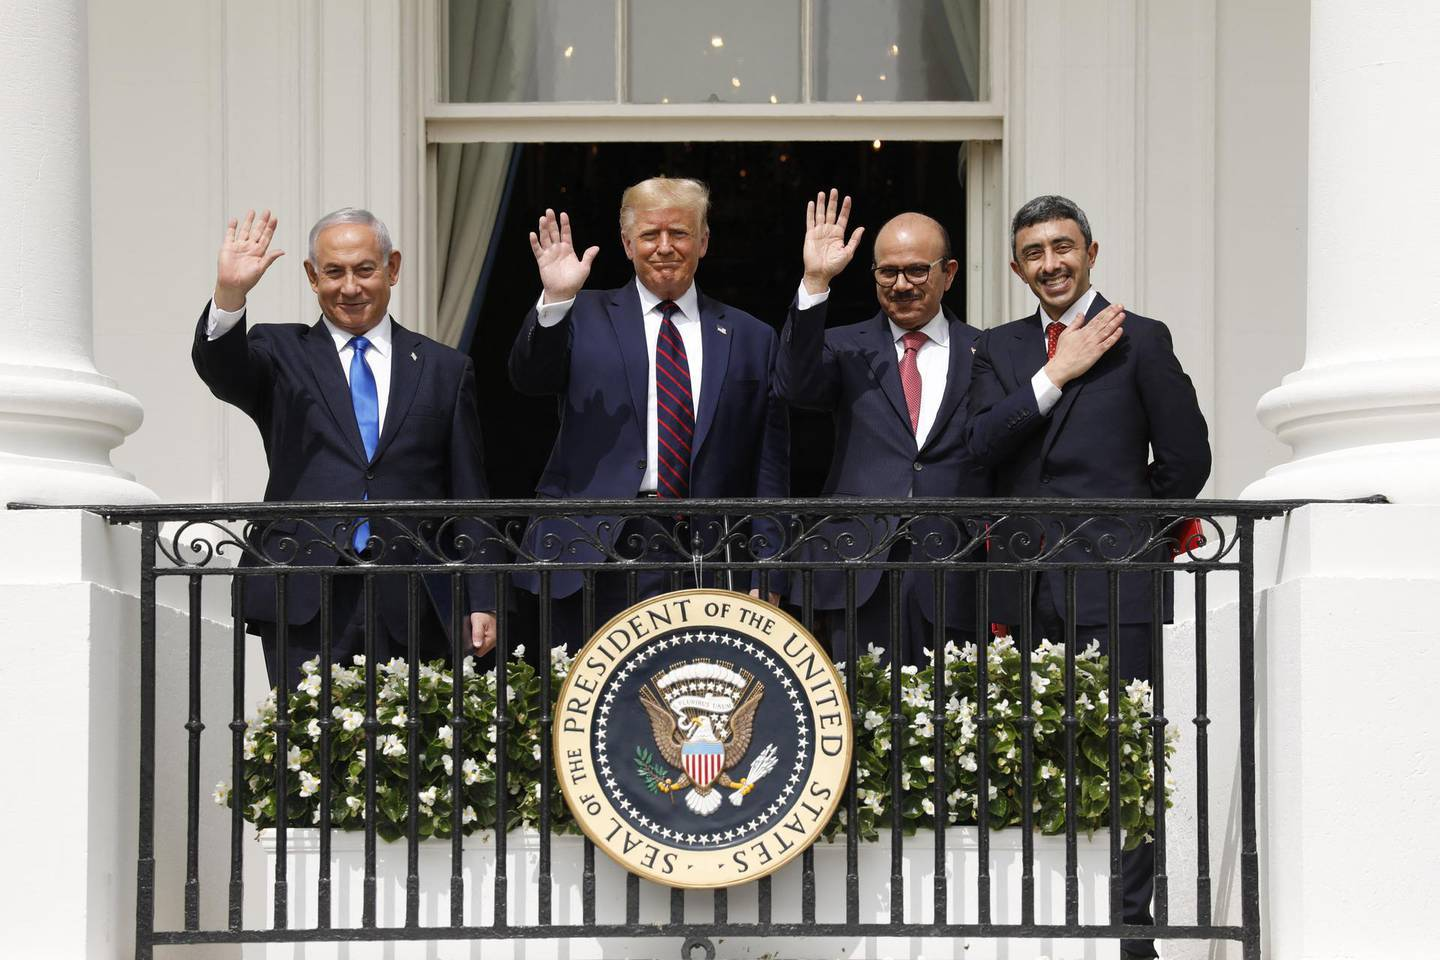 FILE: Bloomberg Best Of U.S. President Donald Trump 2017 - 2020: Benjamin Netanyahu, Israel's prime minister, from left, U.S. President Donald Trump, Abdullatif bin Rashid Al Zayani, Bahrain's foreign affairs minister, and Sheikh Abdullah bin Zayed bin Sultan Al Nahyan, United Arab Emirates' foreign affairs minister, stand during an Abraham Accords signing ceremony event on the South Lawn of the White House in Washington, D.C., U.S., on Tuesday, Sept. 15, 2020. Our editors select the best archive images looking back at Trump's 4 year term from 2017 - 2020. Photographer: Yuri Gripas/Abaca/Bloomberg